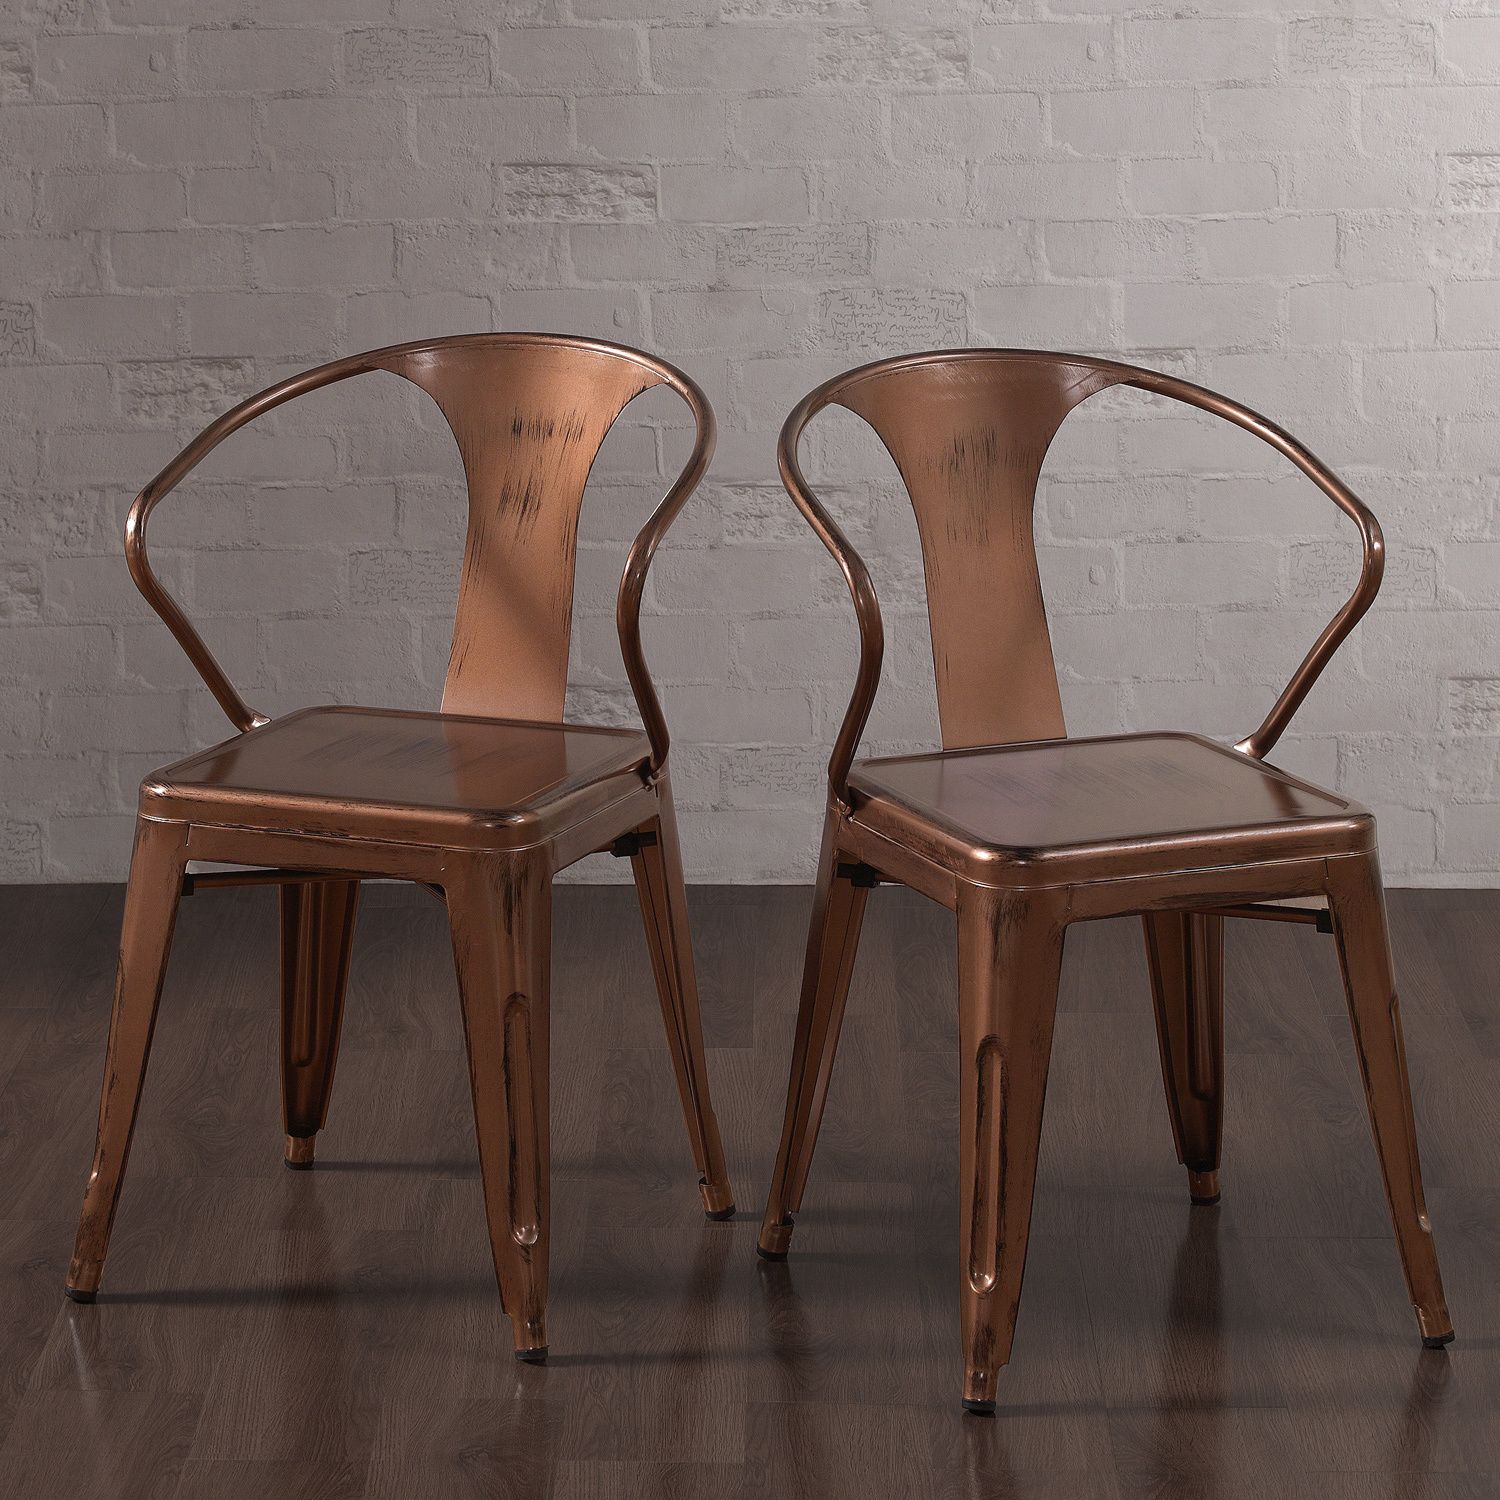 Brushed Copper Tabouret Stacking Chairs (Set Of 4)   Overstock Shopping    Great Deals